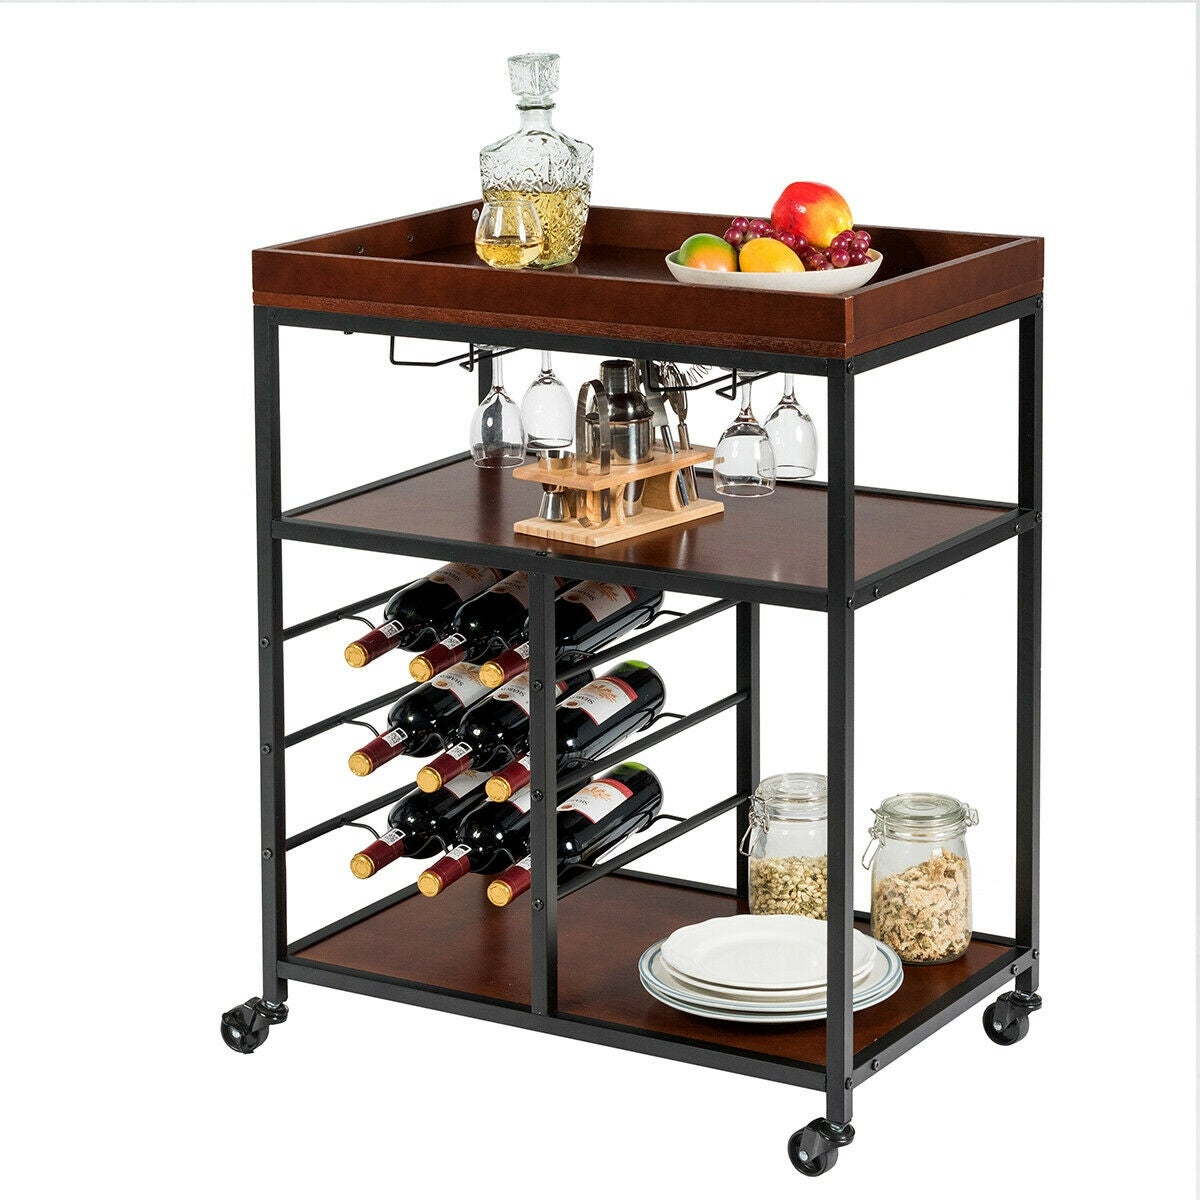 Gymax 3 Tier Storage Kitchen Trolley Utility Bar Serving Cart w/Wine Rack &  Glass Holder